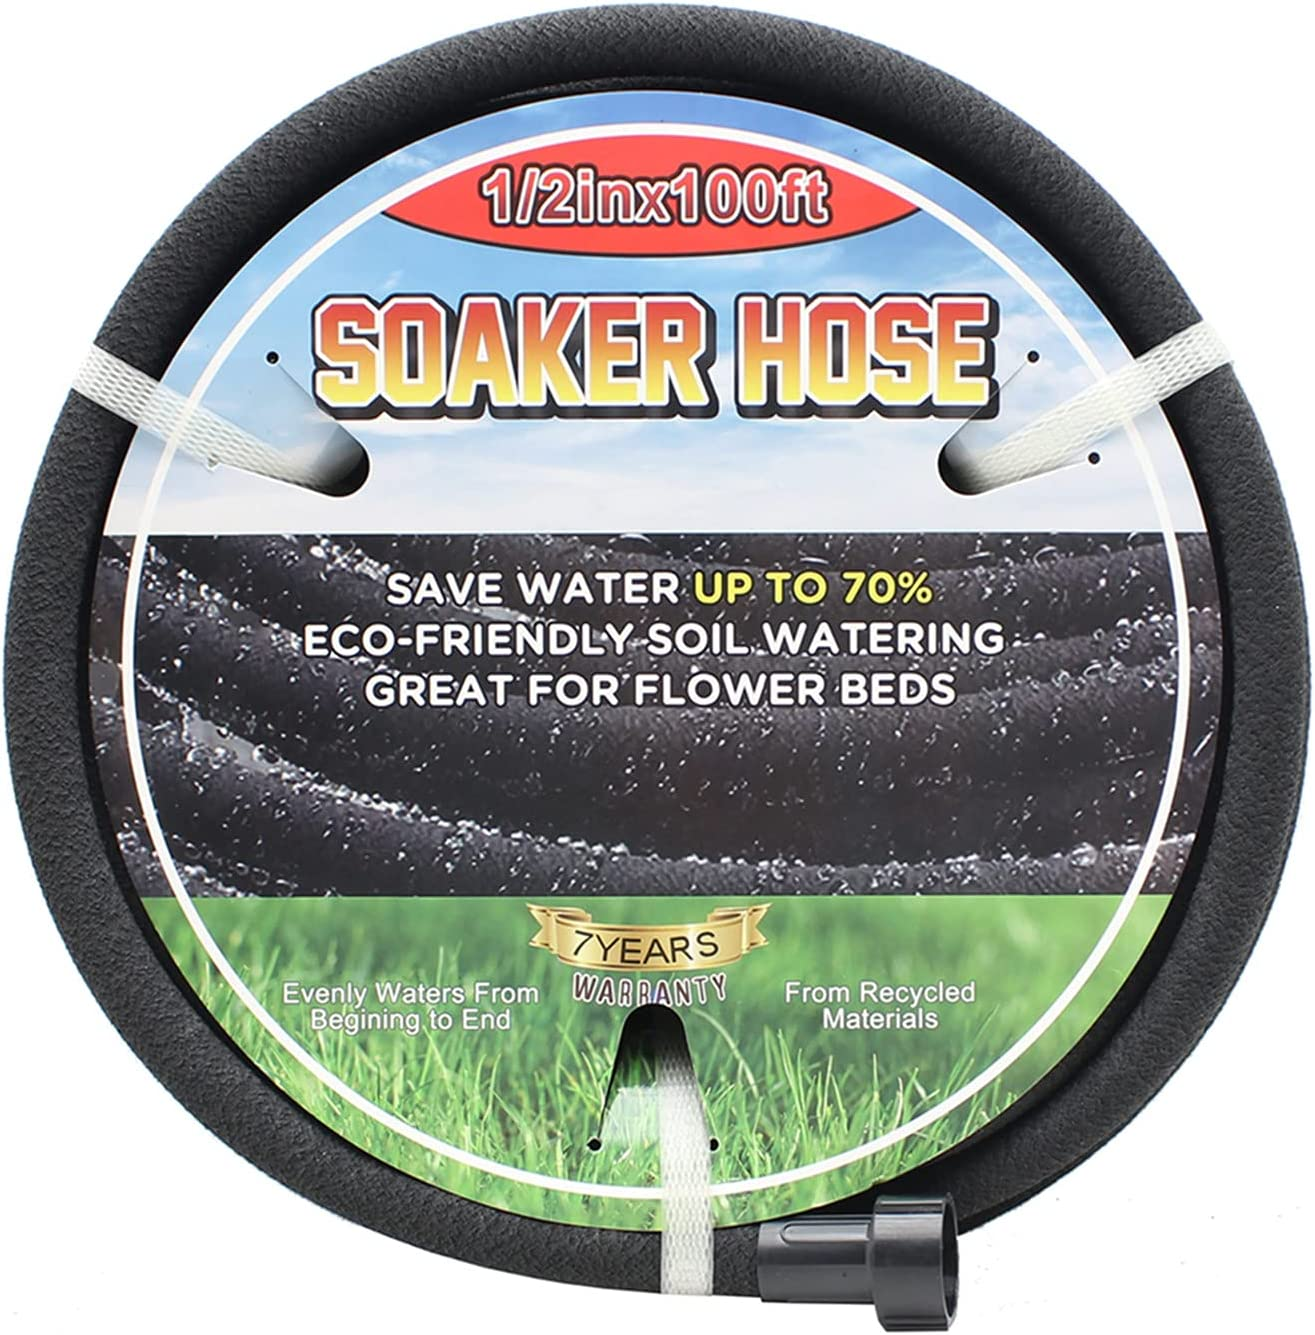 Meigesi 1/2in Soaker Hose -Garden Hose 100FT Garden Water Hose Save 70% Water- Drip Hose for Lawn- Great for Garden Flower Beds - Perfect Delivery of Water